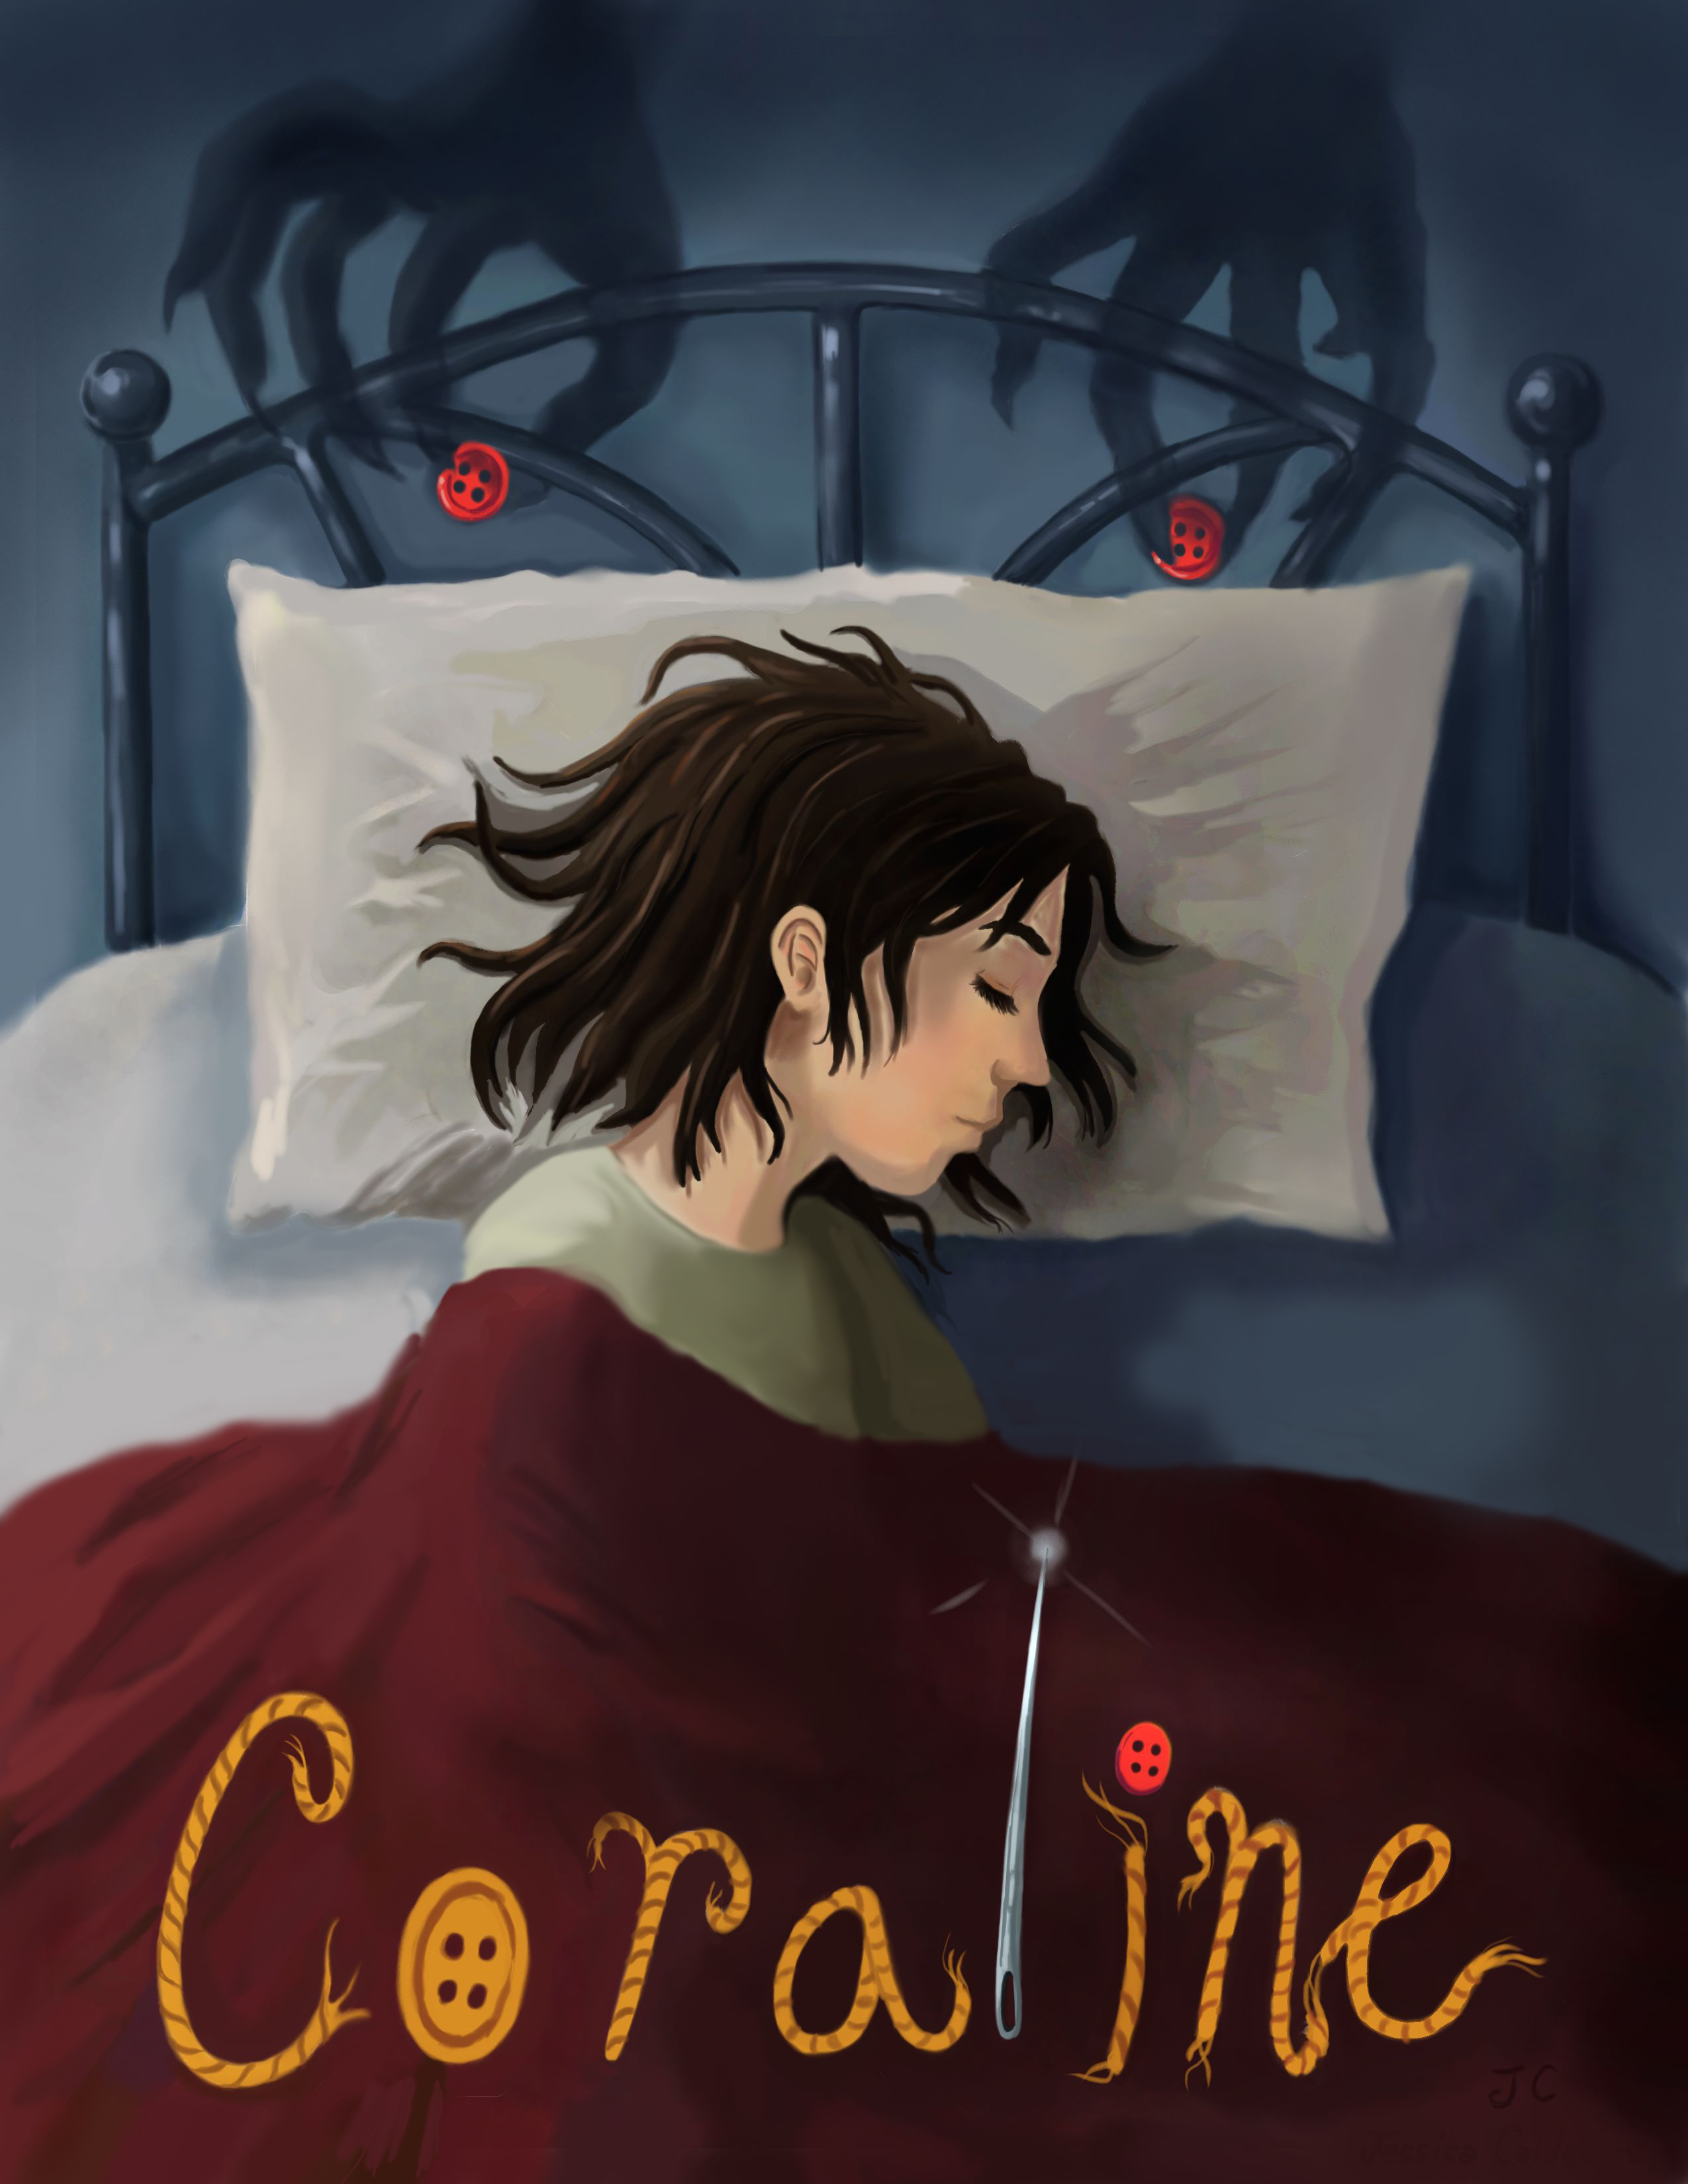 Book Cover Illustration Assignment : Coraline neil gaiman book review lorelaycci